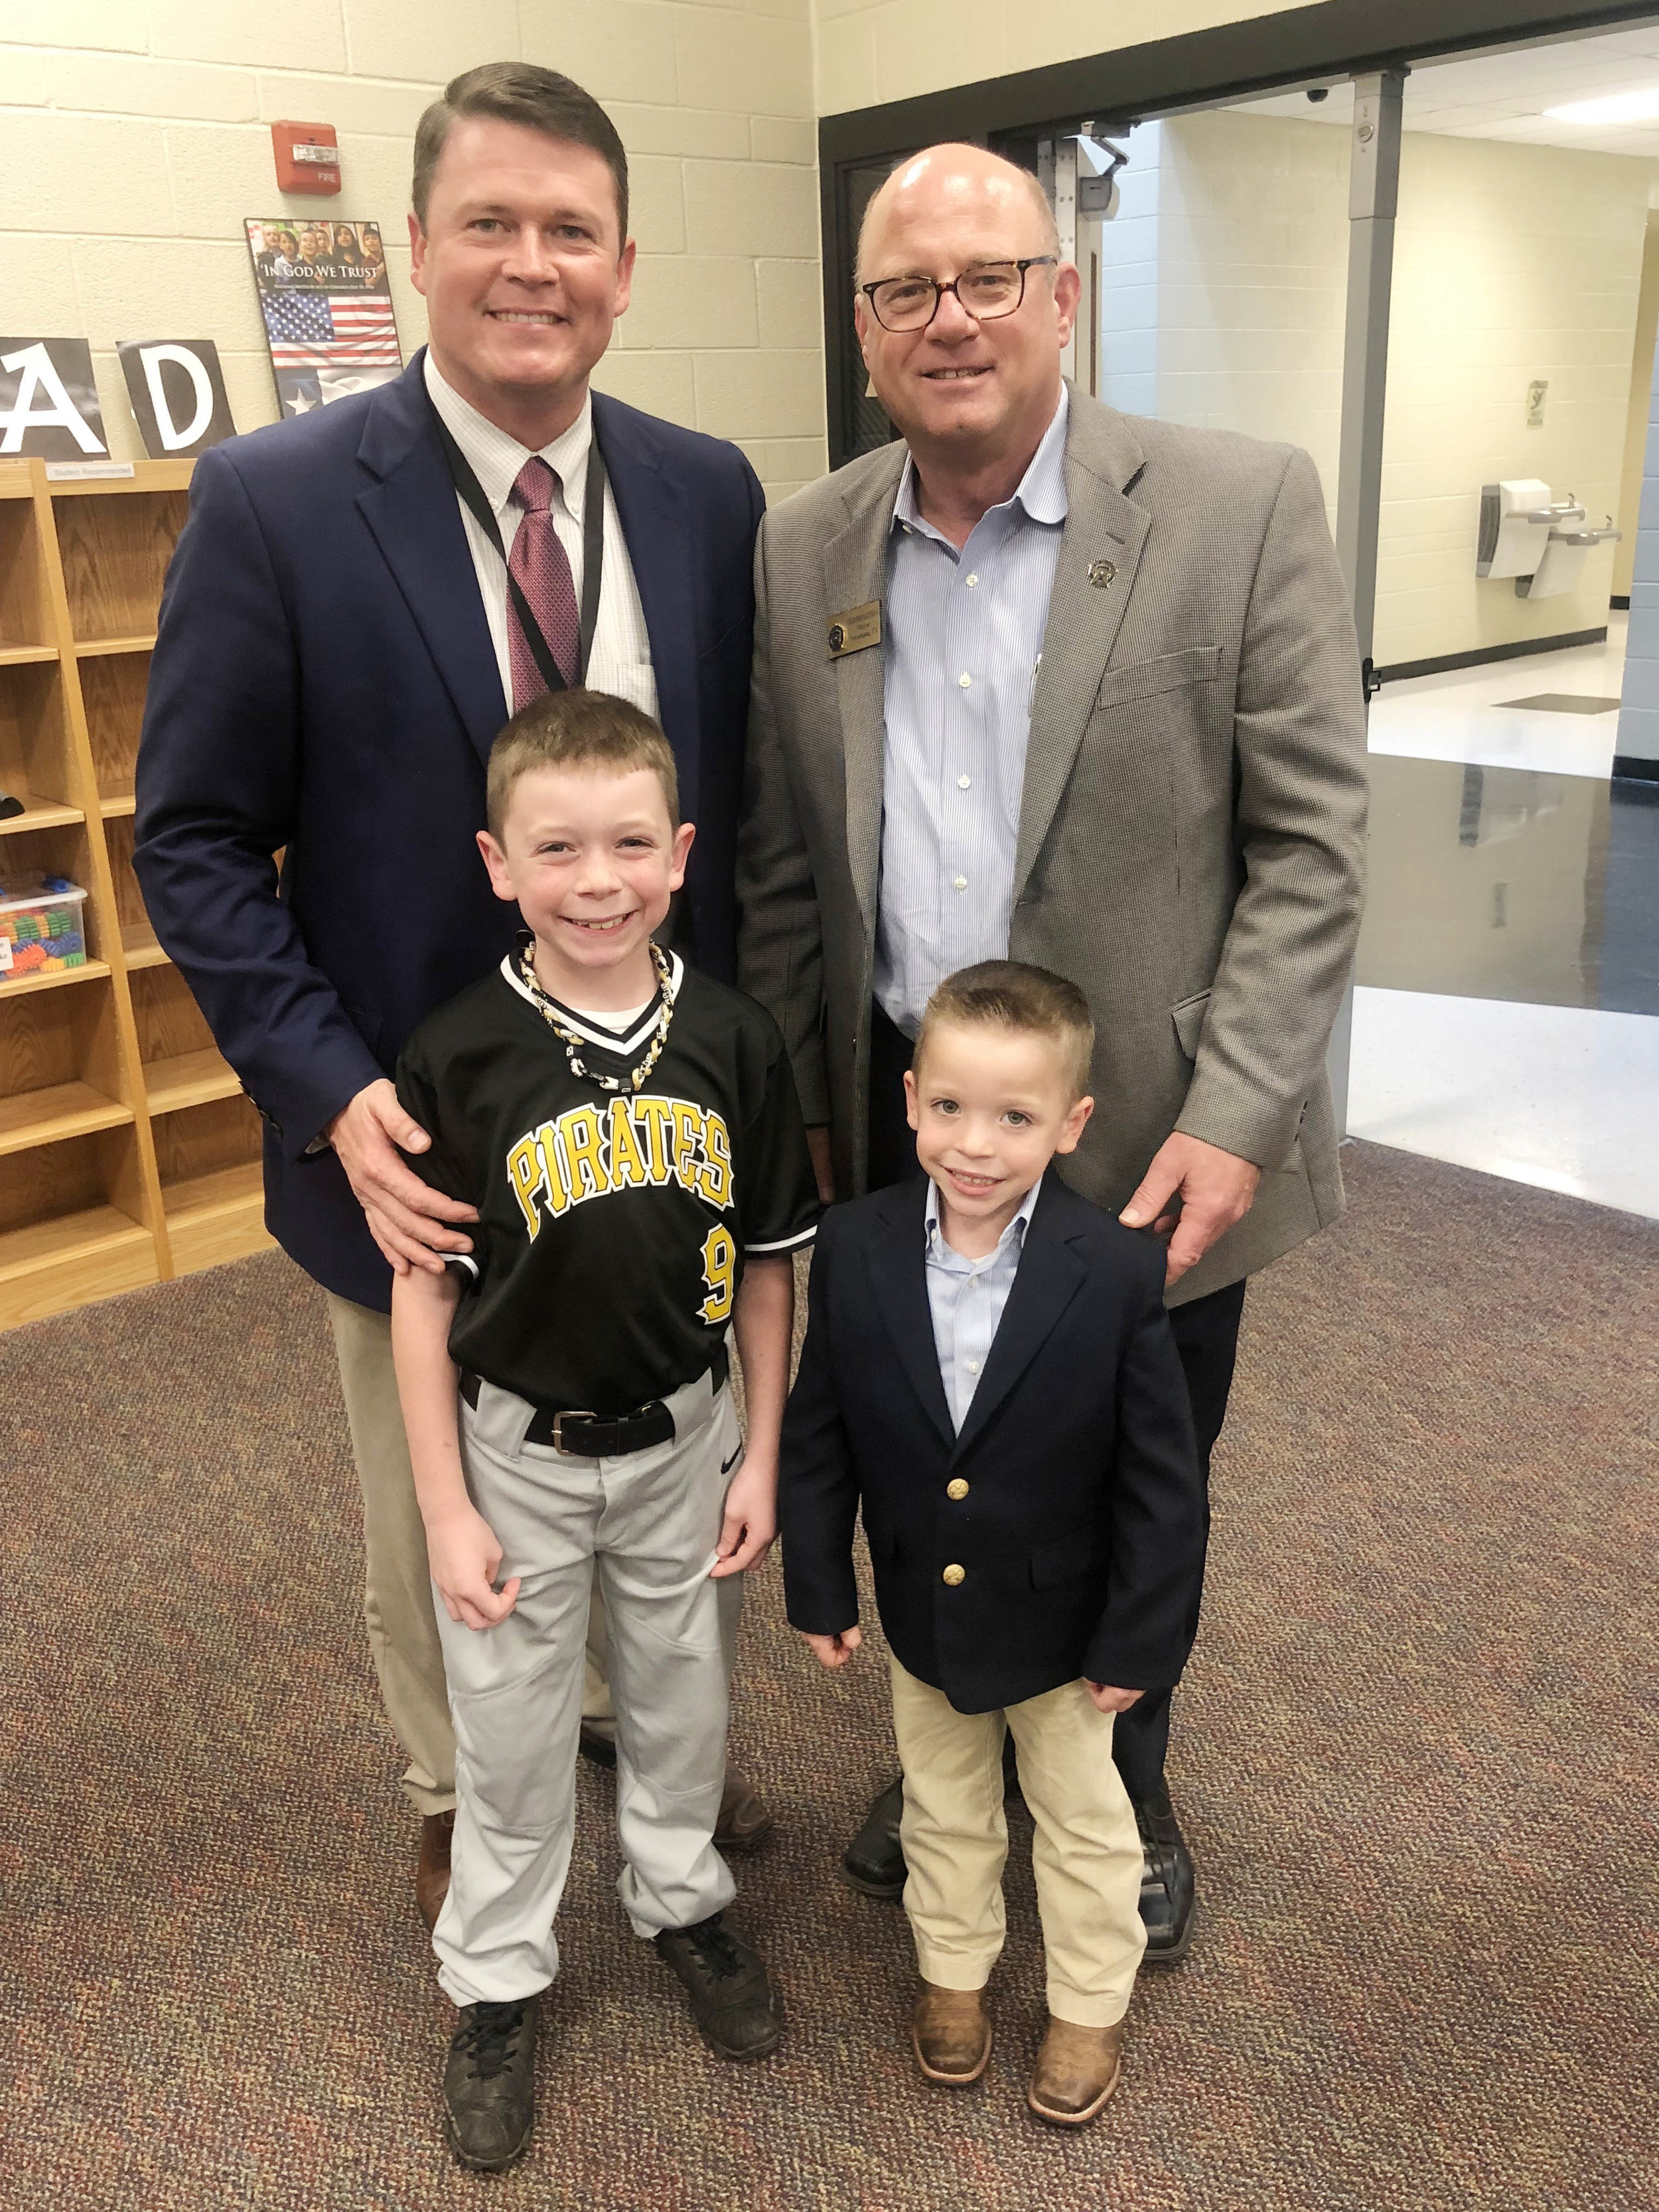 Chad, Jack and Ryan Pirtle with Mayor Bob Bruggeman